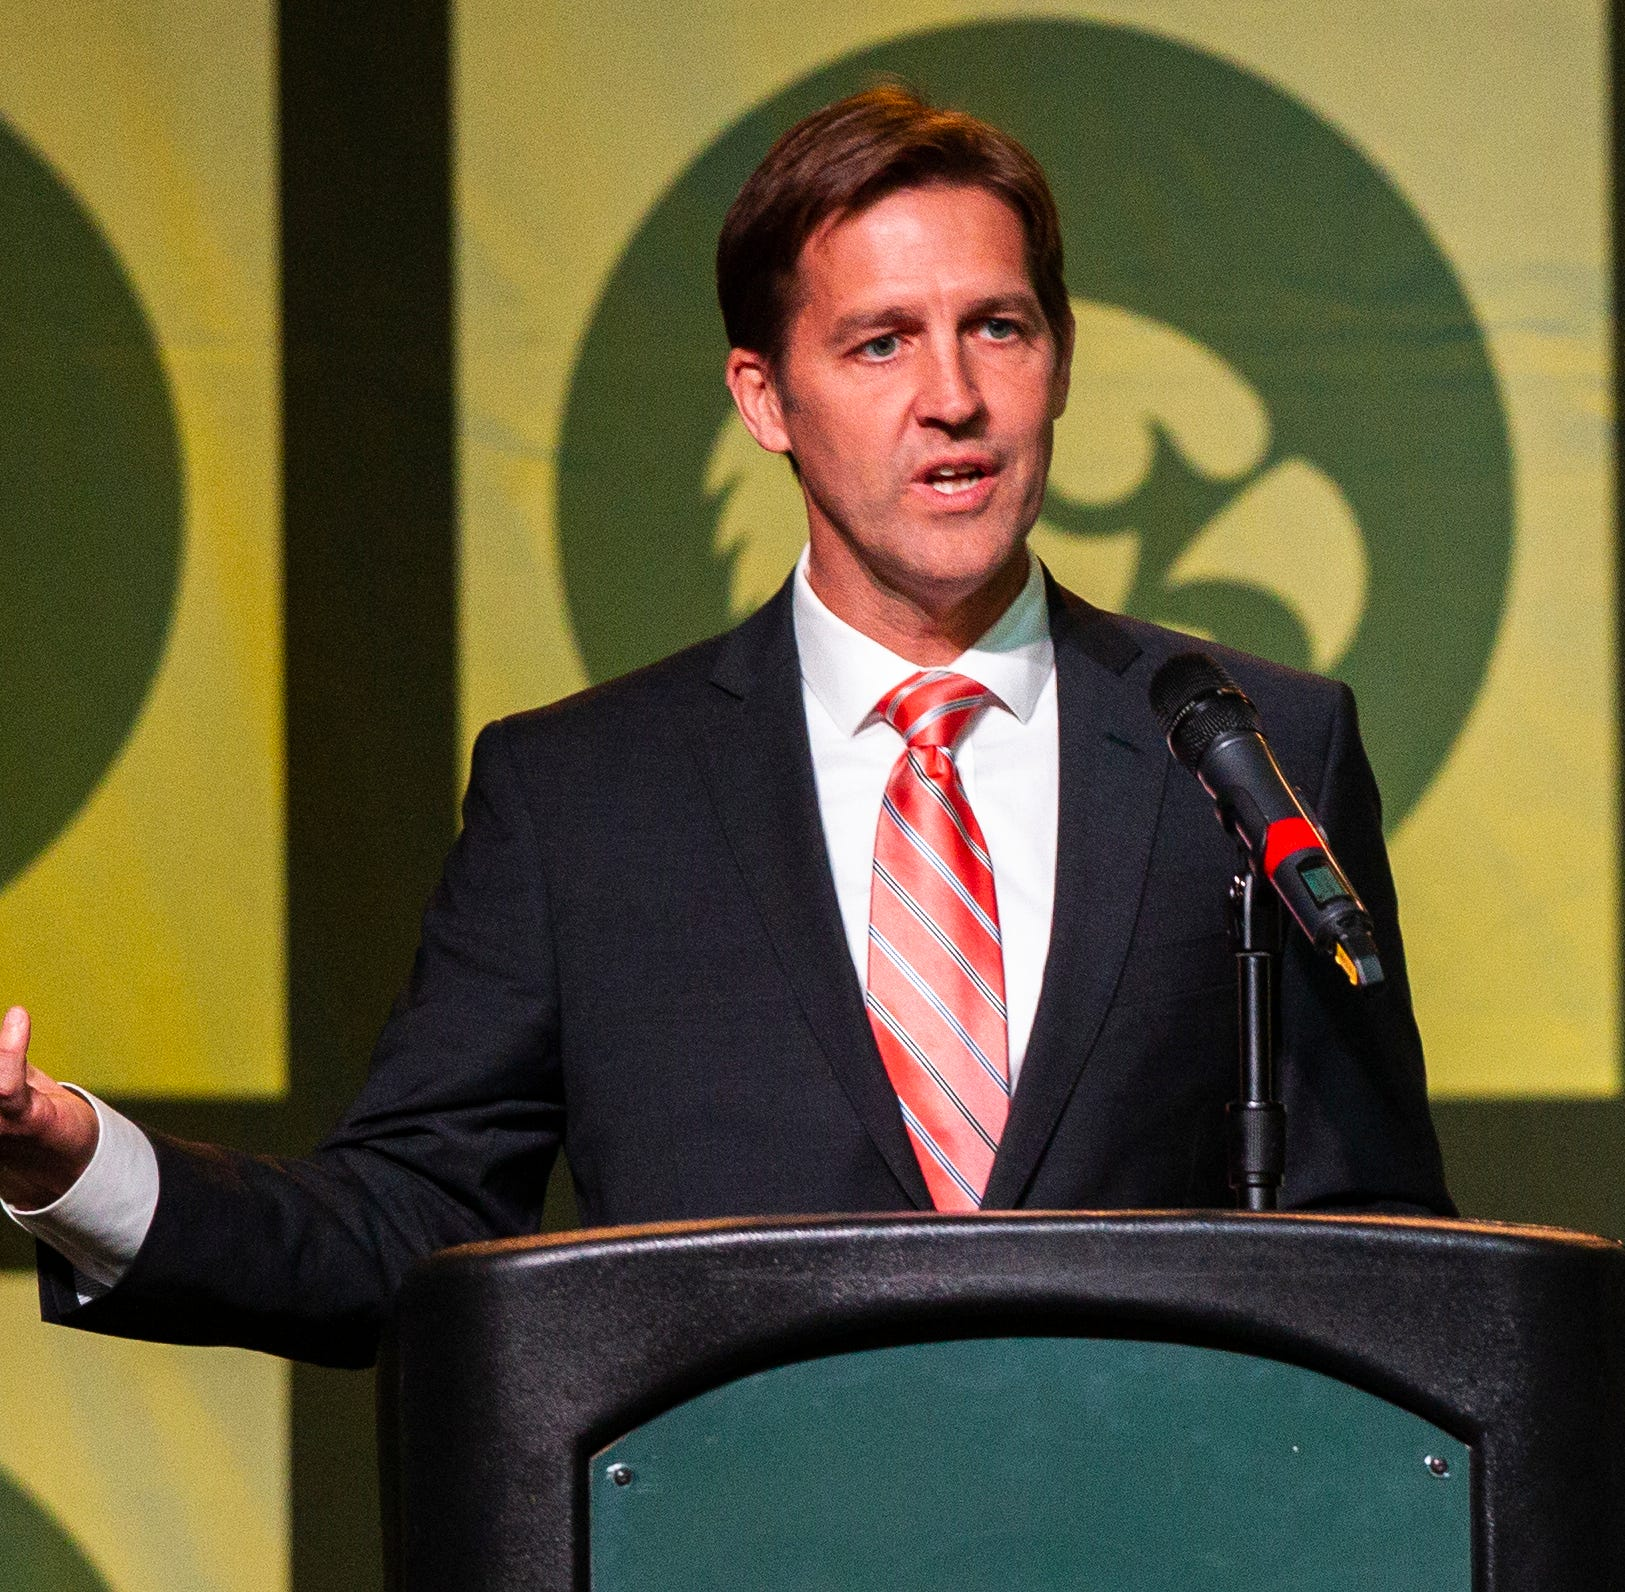 Sen. Ben Sasse's new book has good lessons on why we hate each other